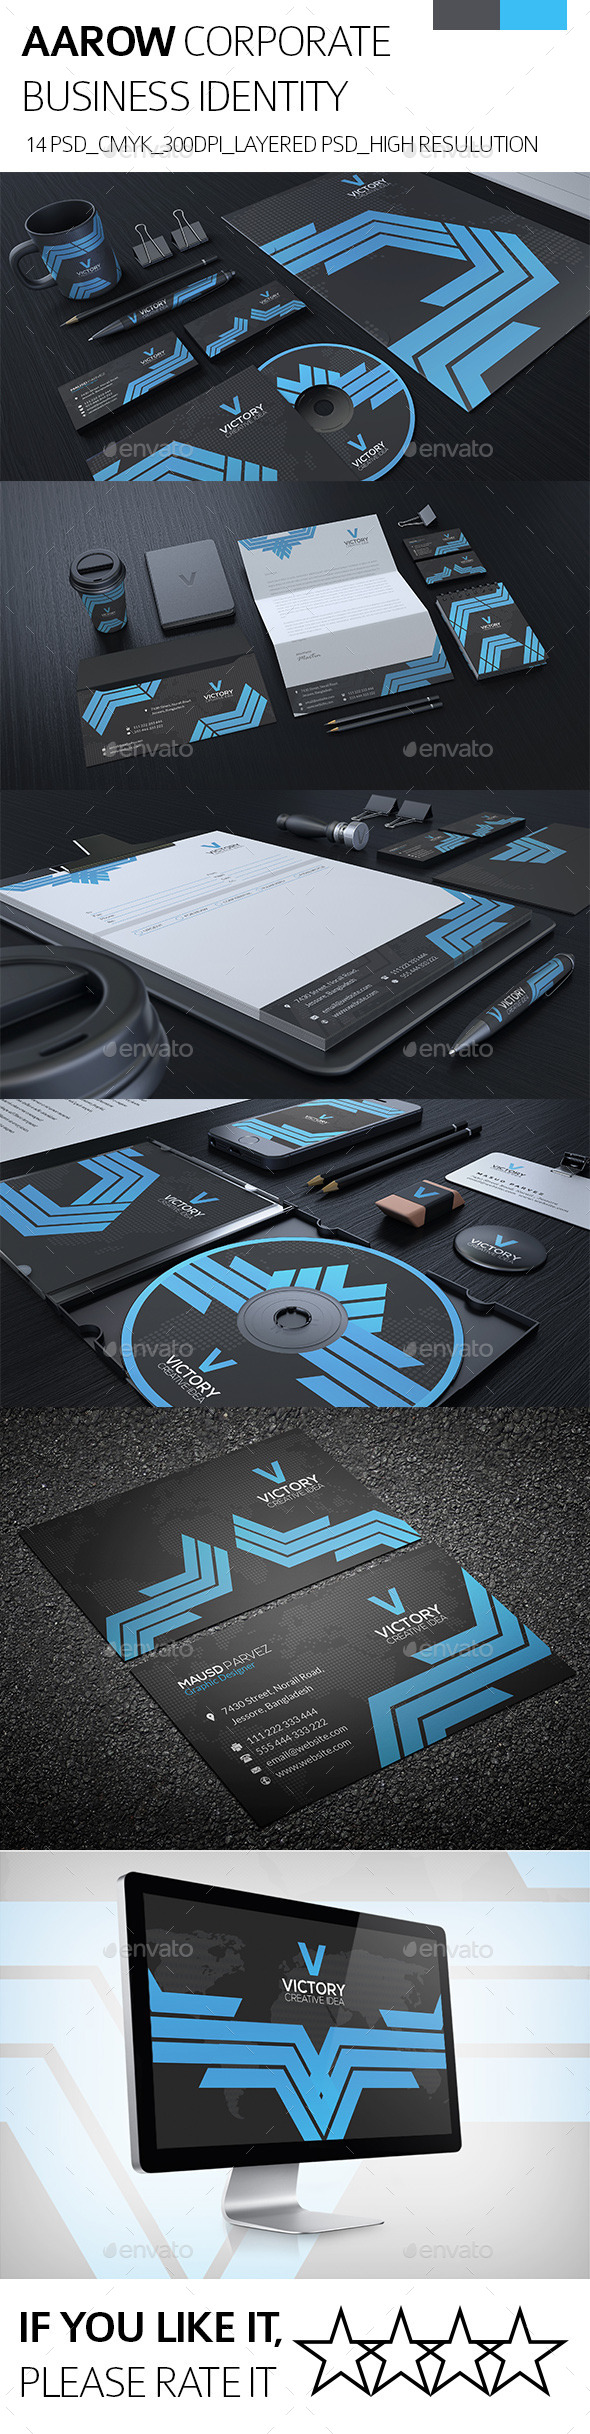 GraphicRiver AAROW CORPORATE IDENTITY 8848664